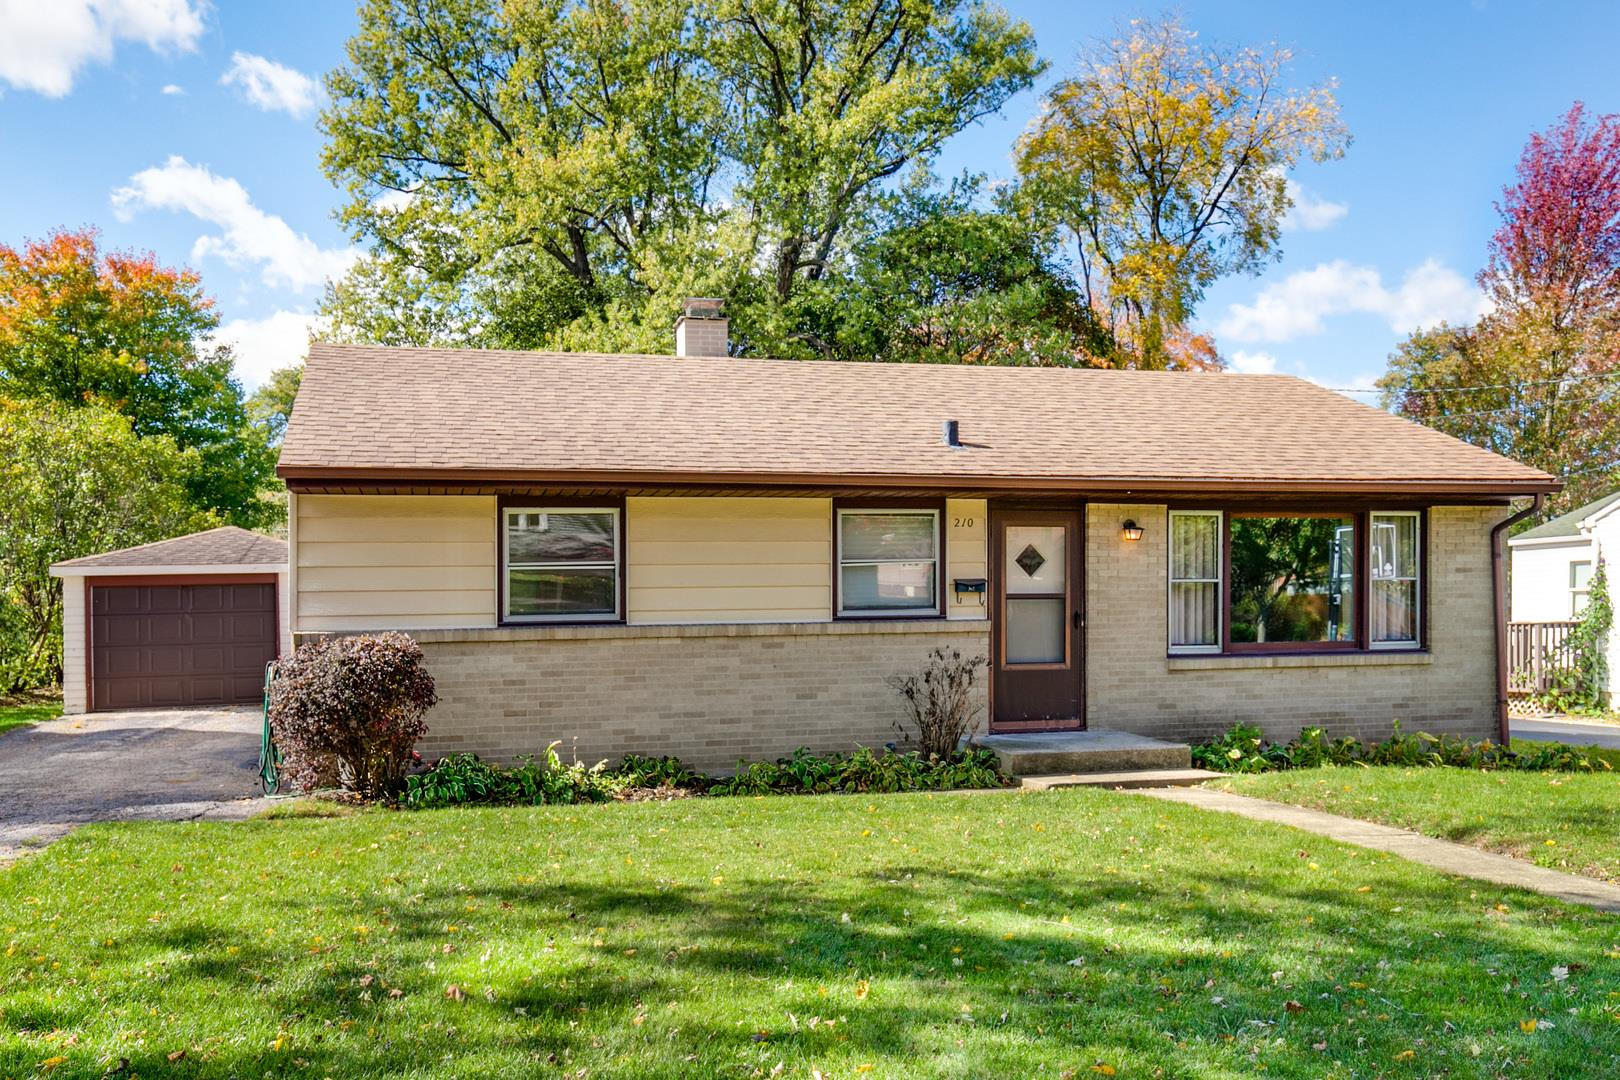 210 Second Street, Crystal Lake, IL 60014 - #: 10907379